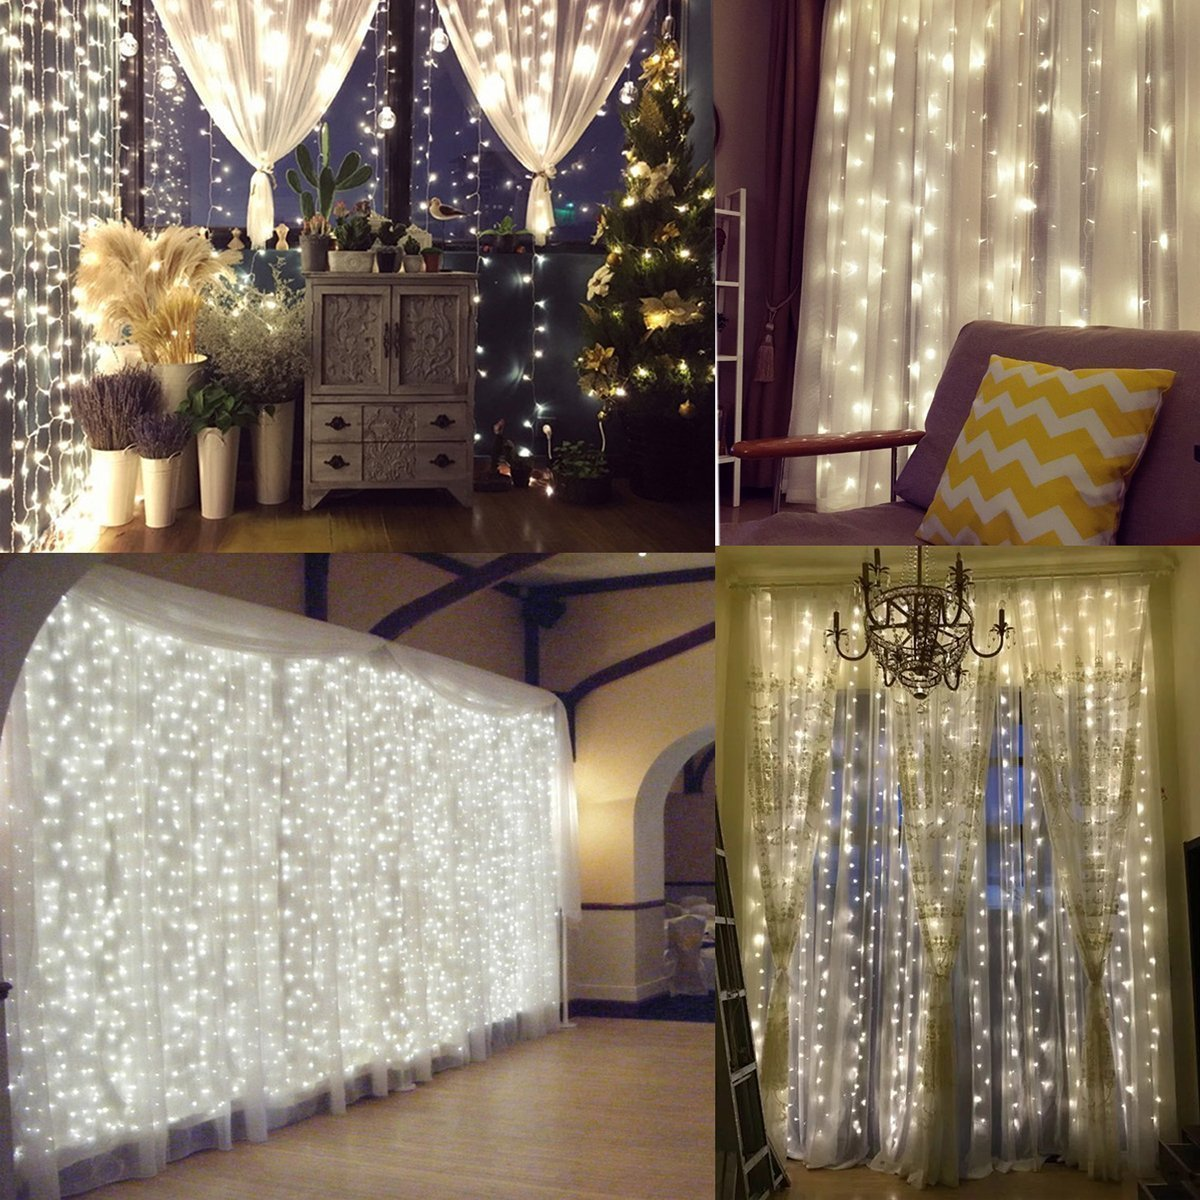 Romote Window Curtain String Lights Starry Fairy Icicle Lights, 9.8ft x 9.8ft, 300 LED, 8 Modes, Indoor Lights for Home Wedding Party Garden Wall Window Decorations, Warm White